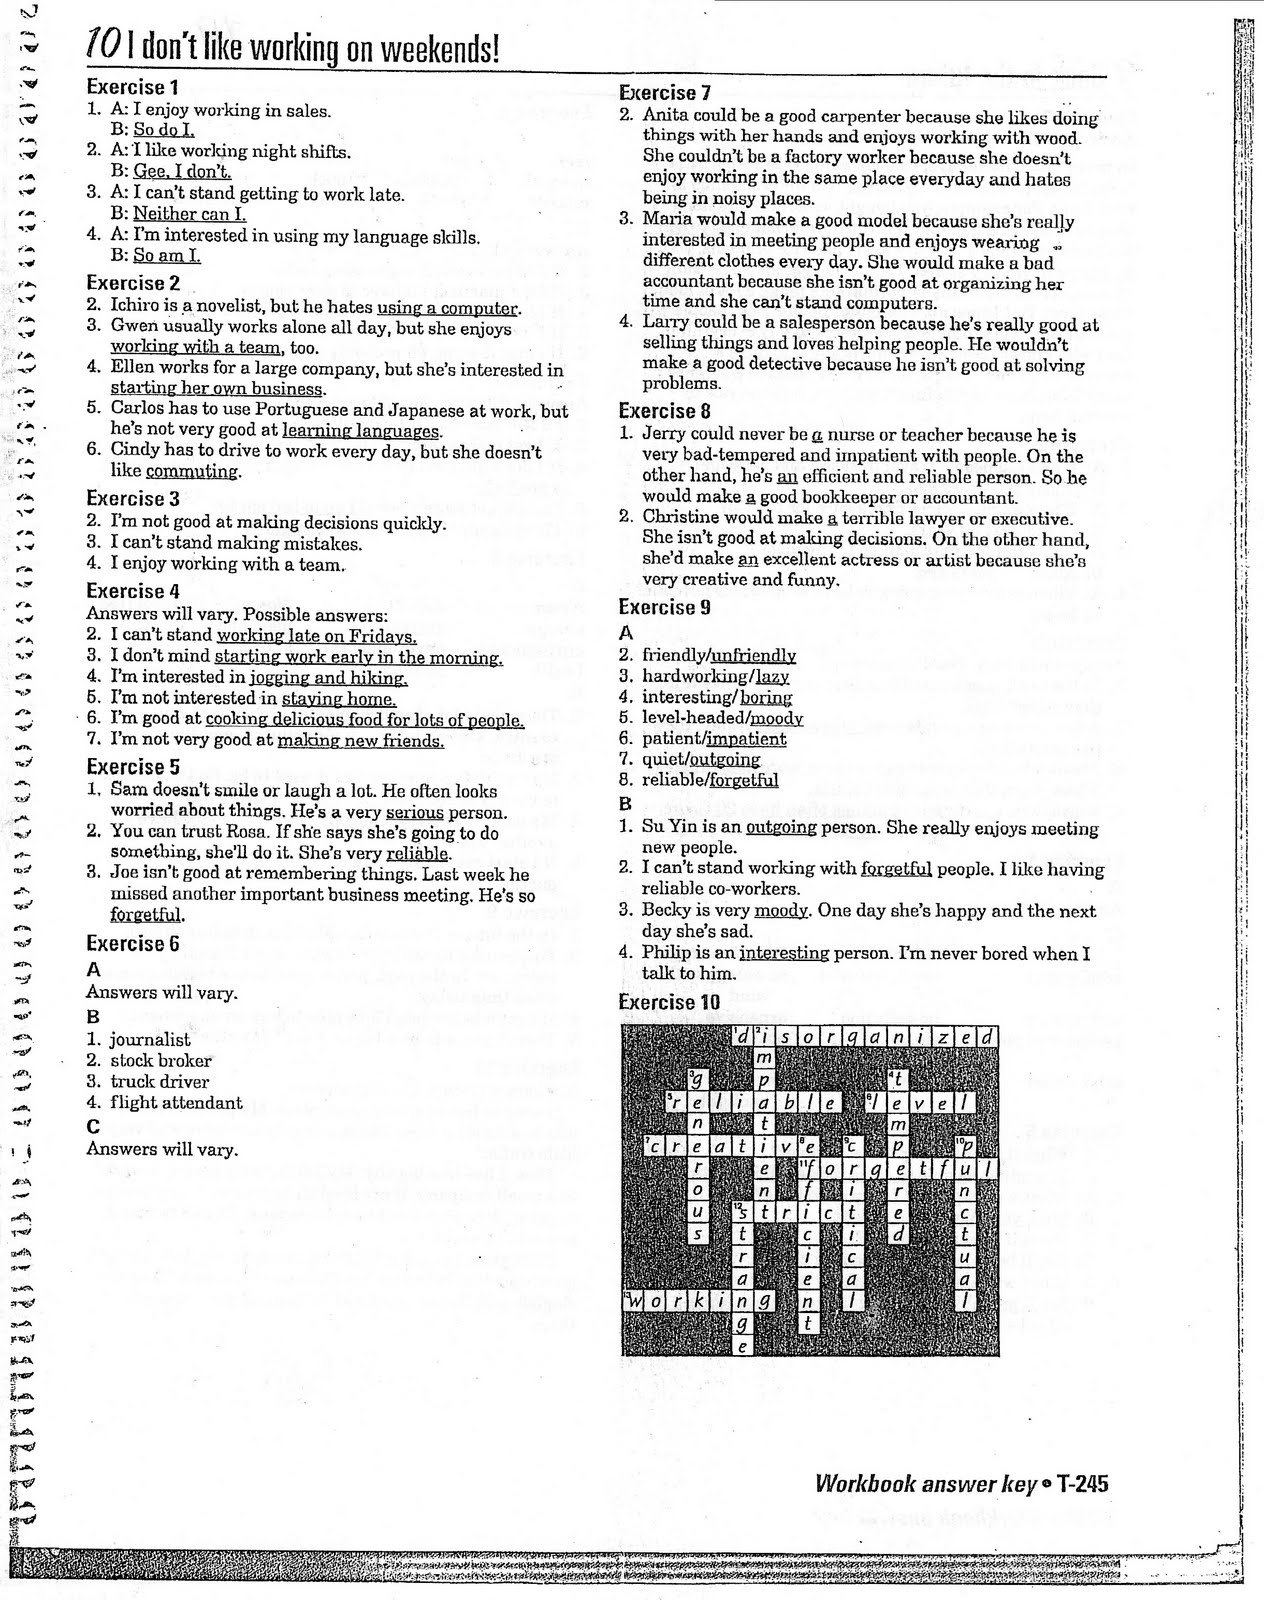 Interchange 2 (English Textbook): Workbook Answers, Unit 10